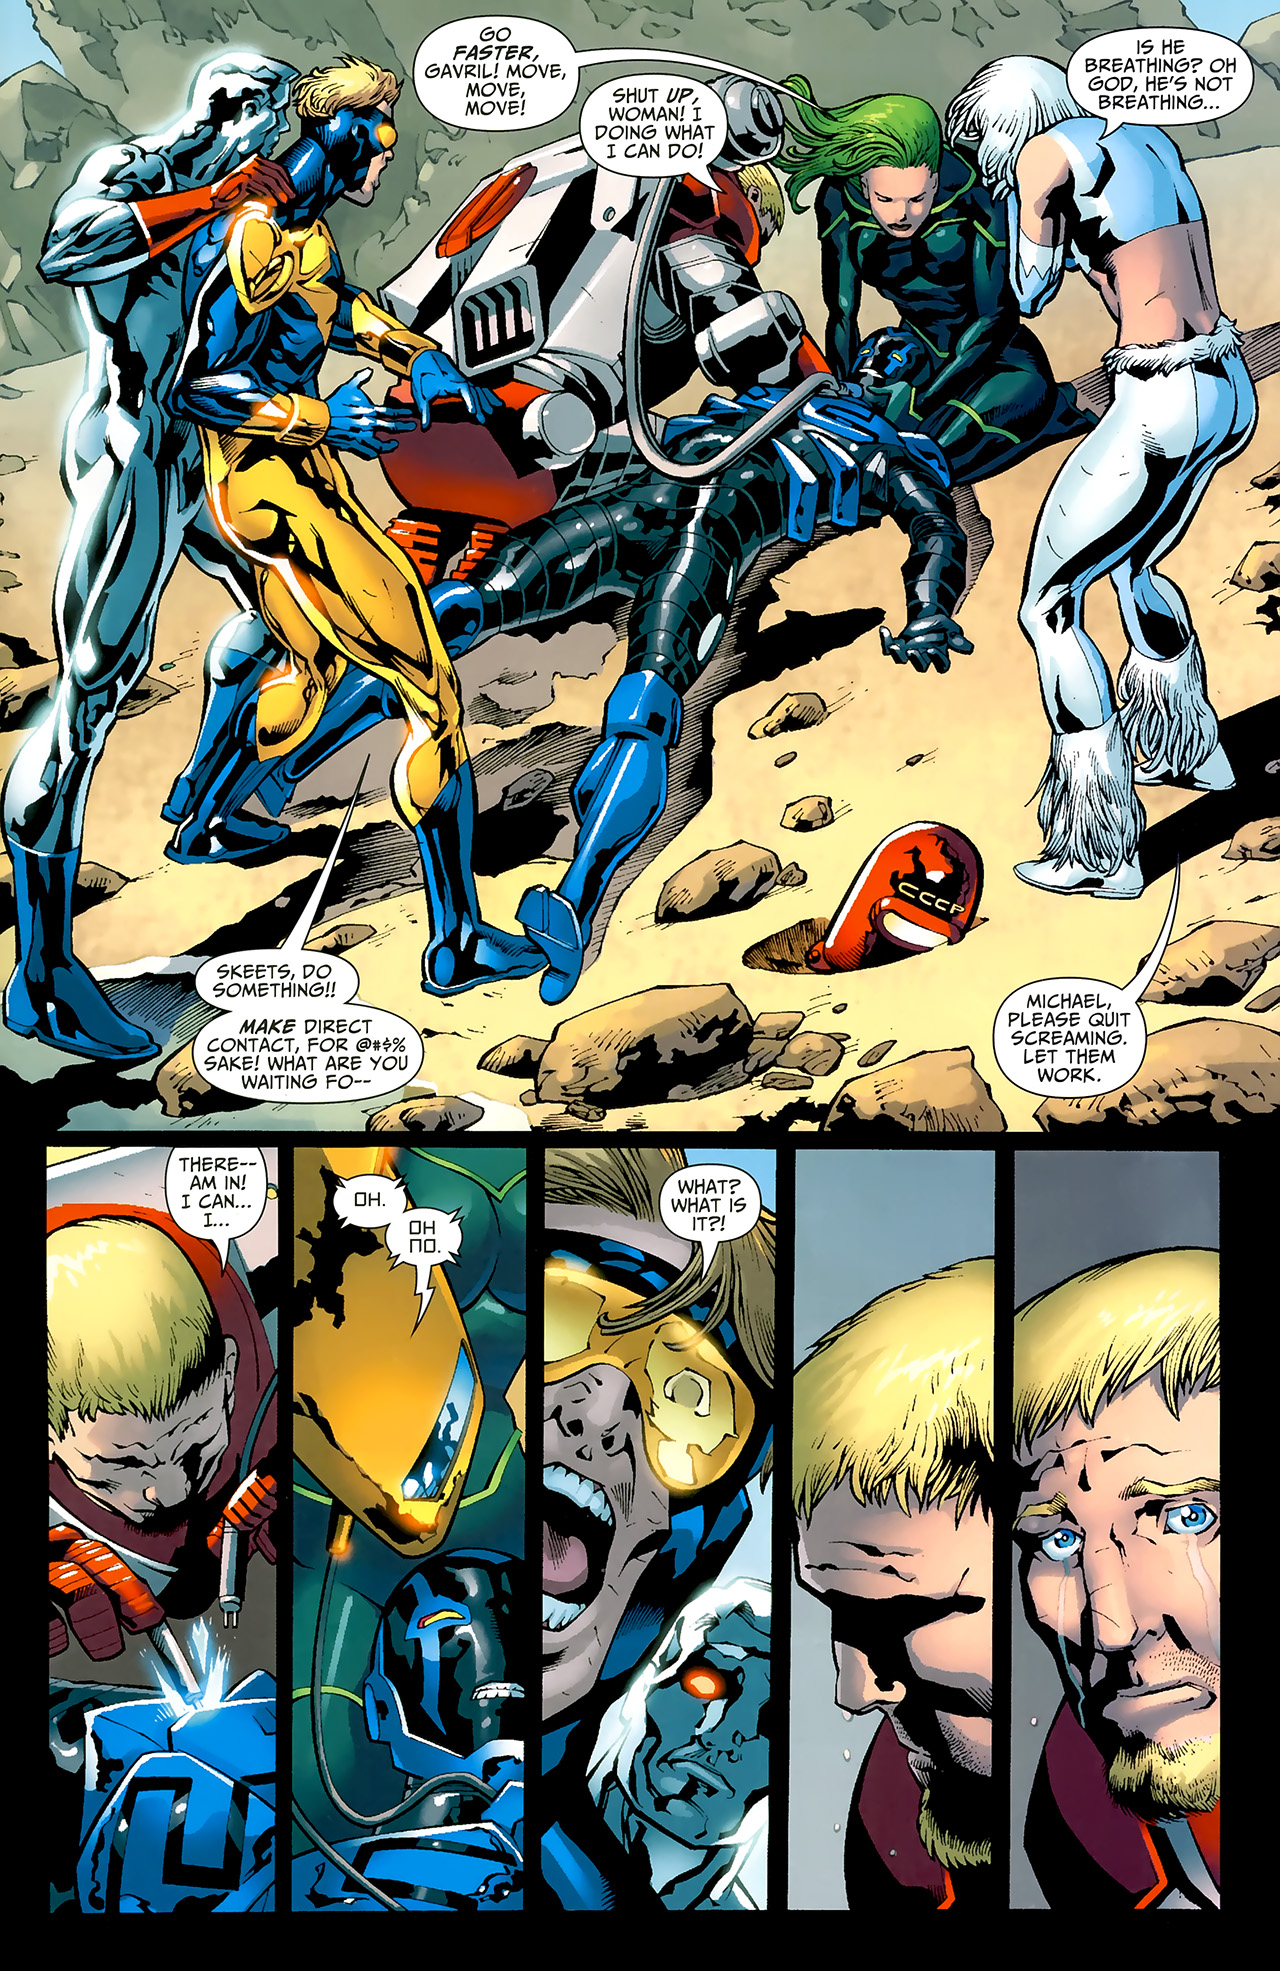 Read online Justice League: Generation Lost comic -  Issue #20 - 21